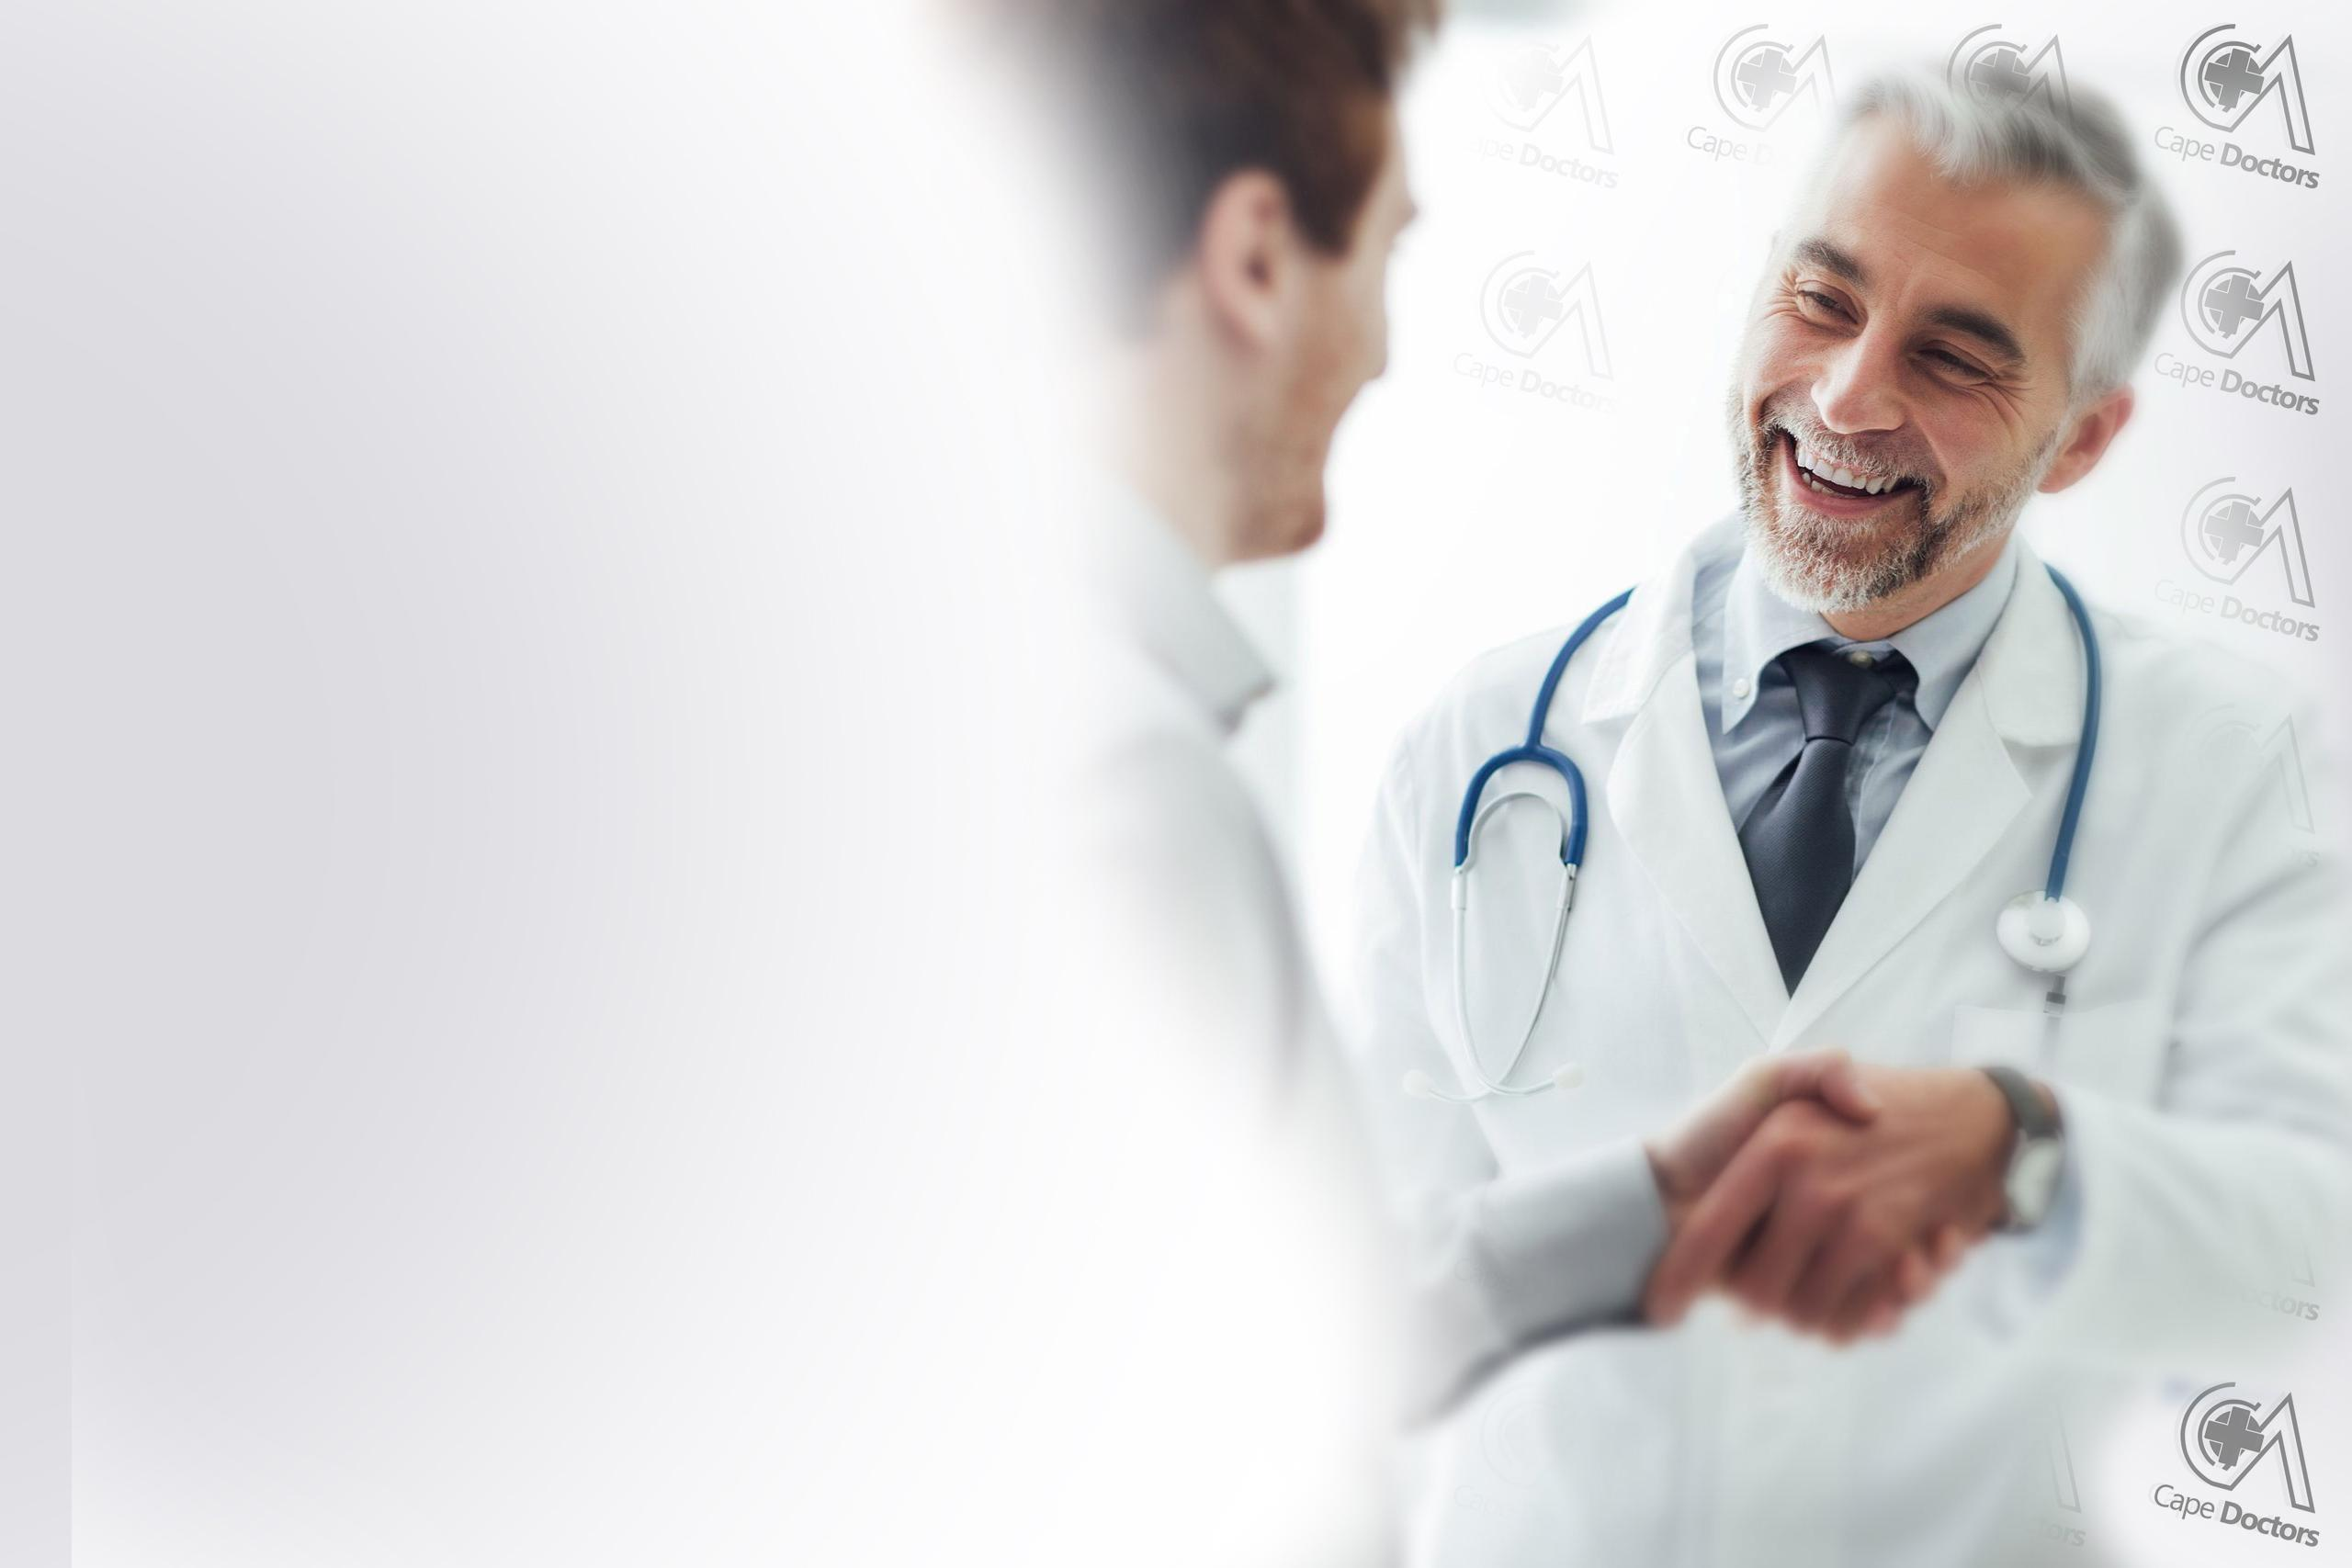 CA Cape Doctors   Call for an appointment or book online. Doctor ...